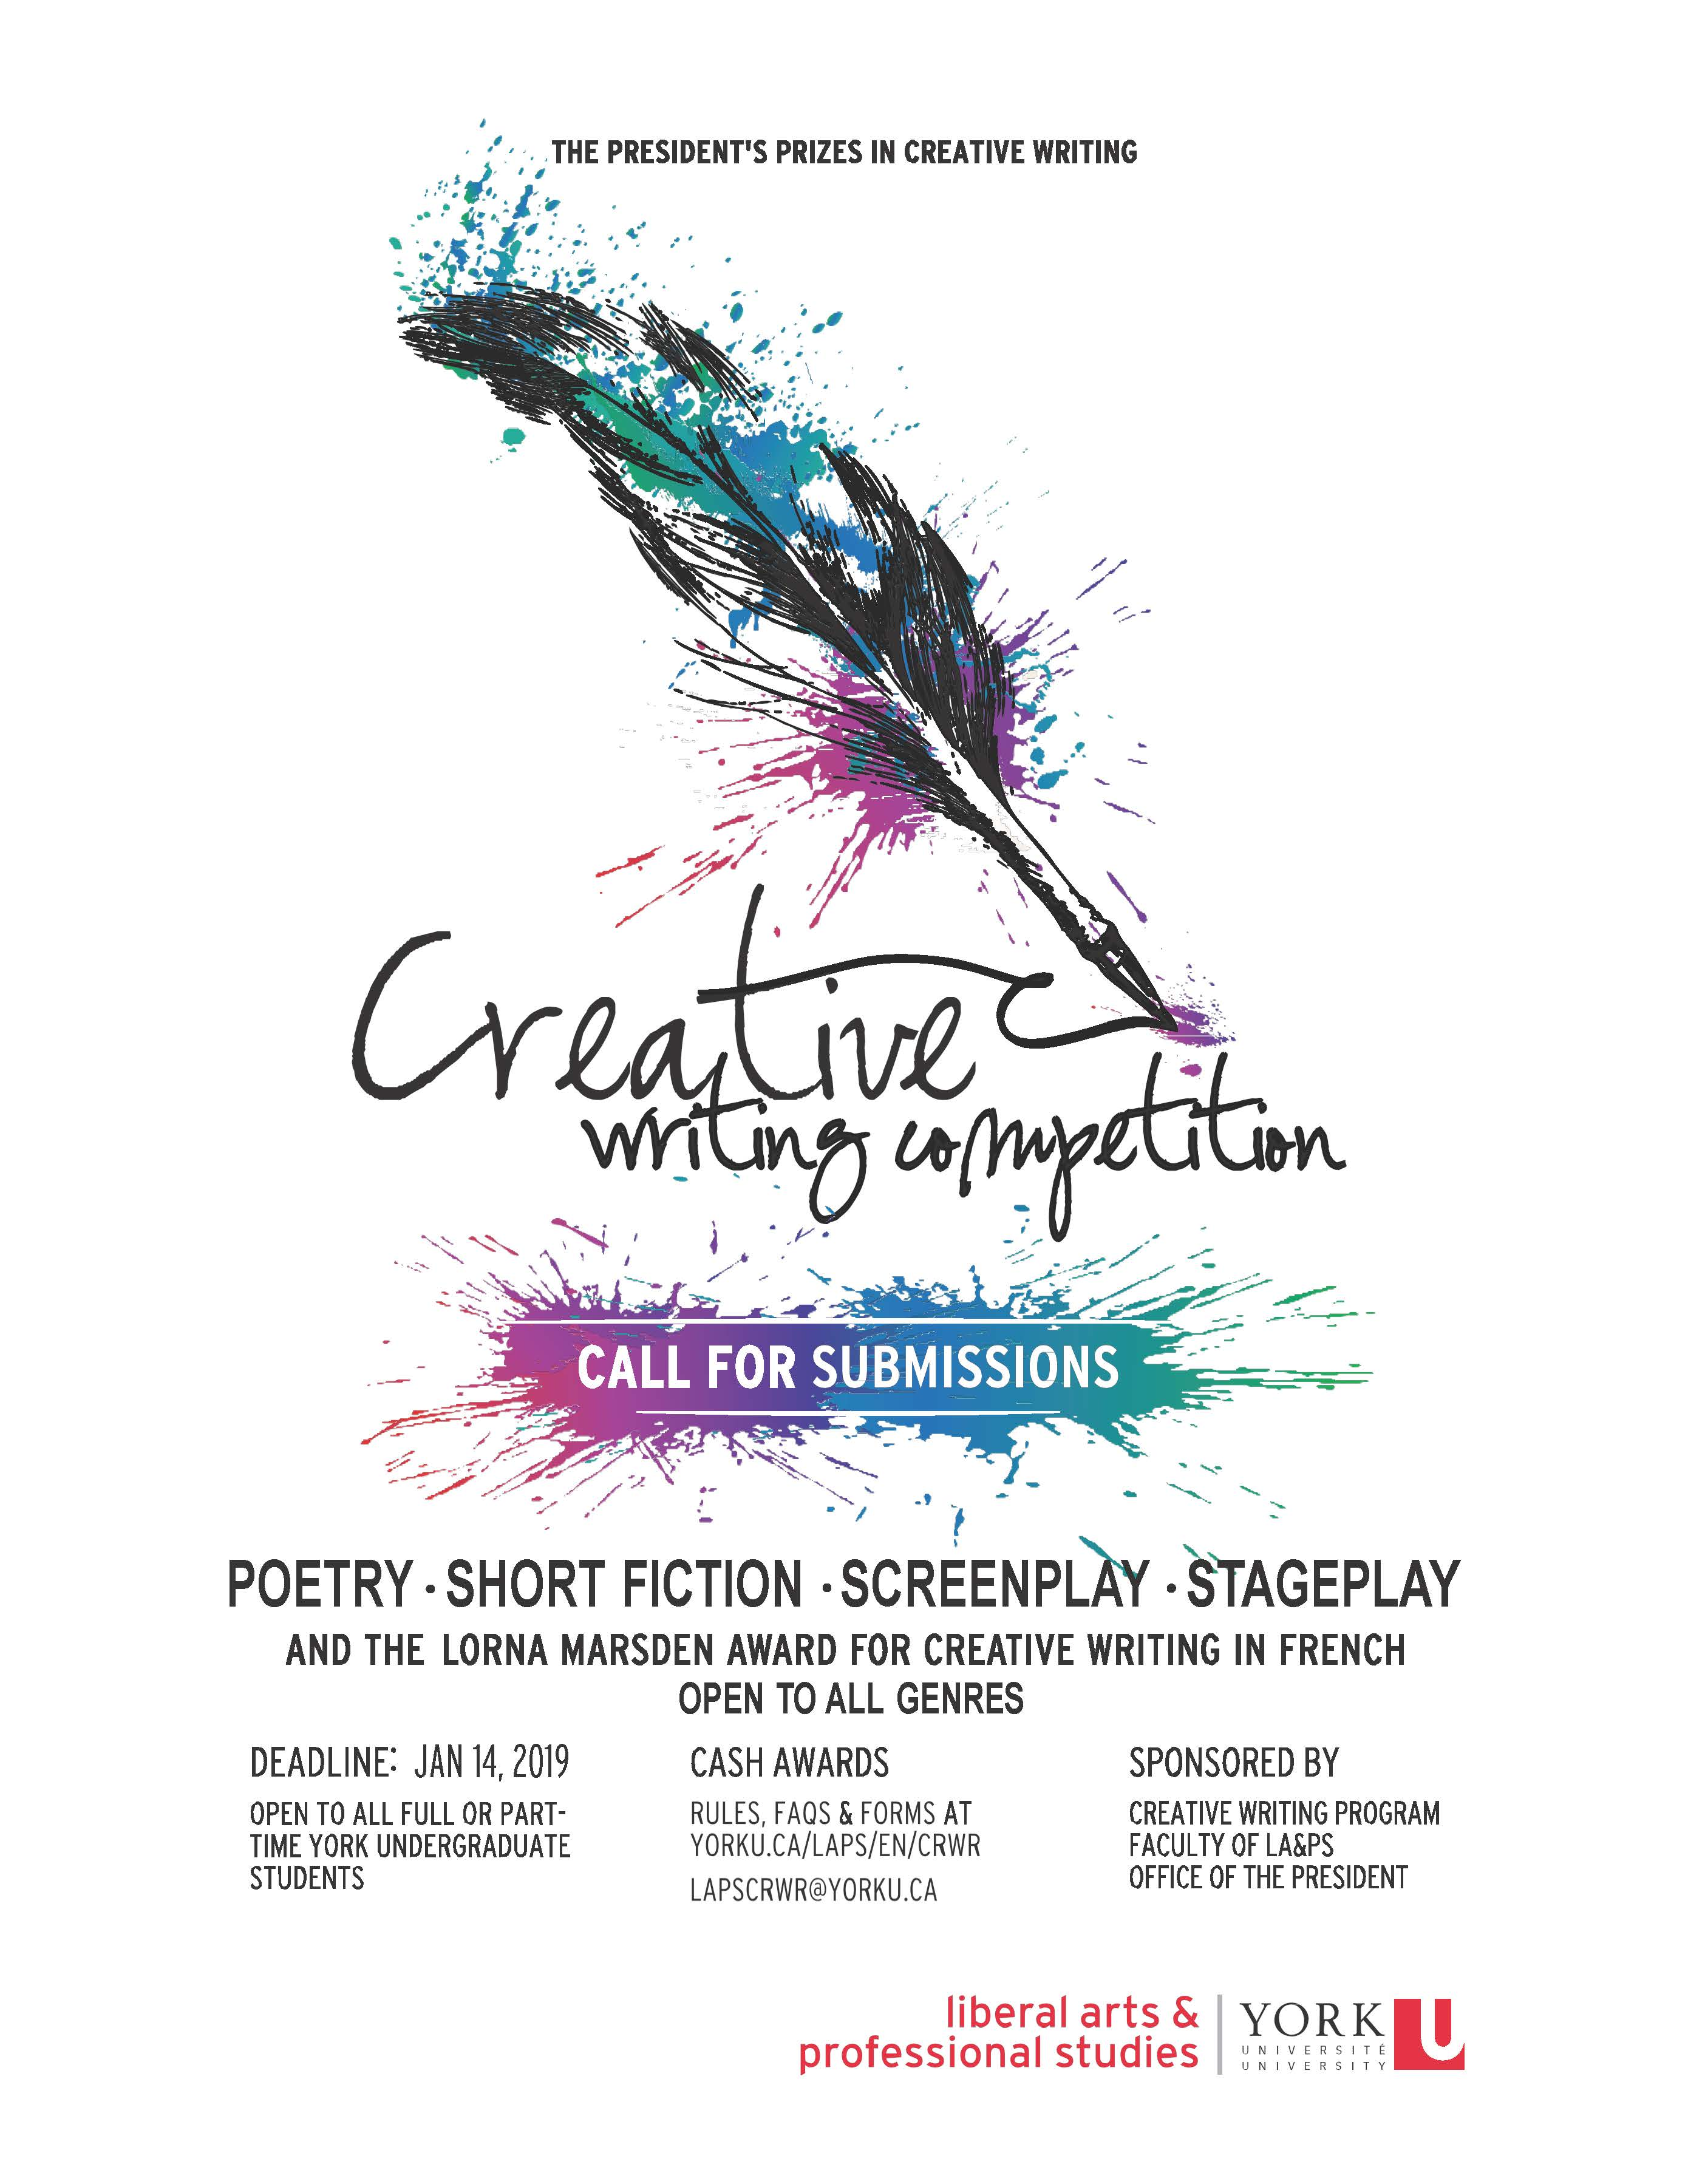 The President's Prizes in Creative Writing - Call for Submissions @ Creative Writing Program, LA&PS, Office of the President | Toronto | Ontario | Canada